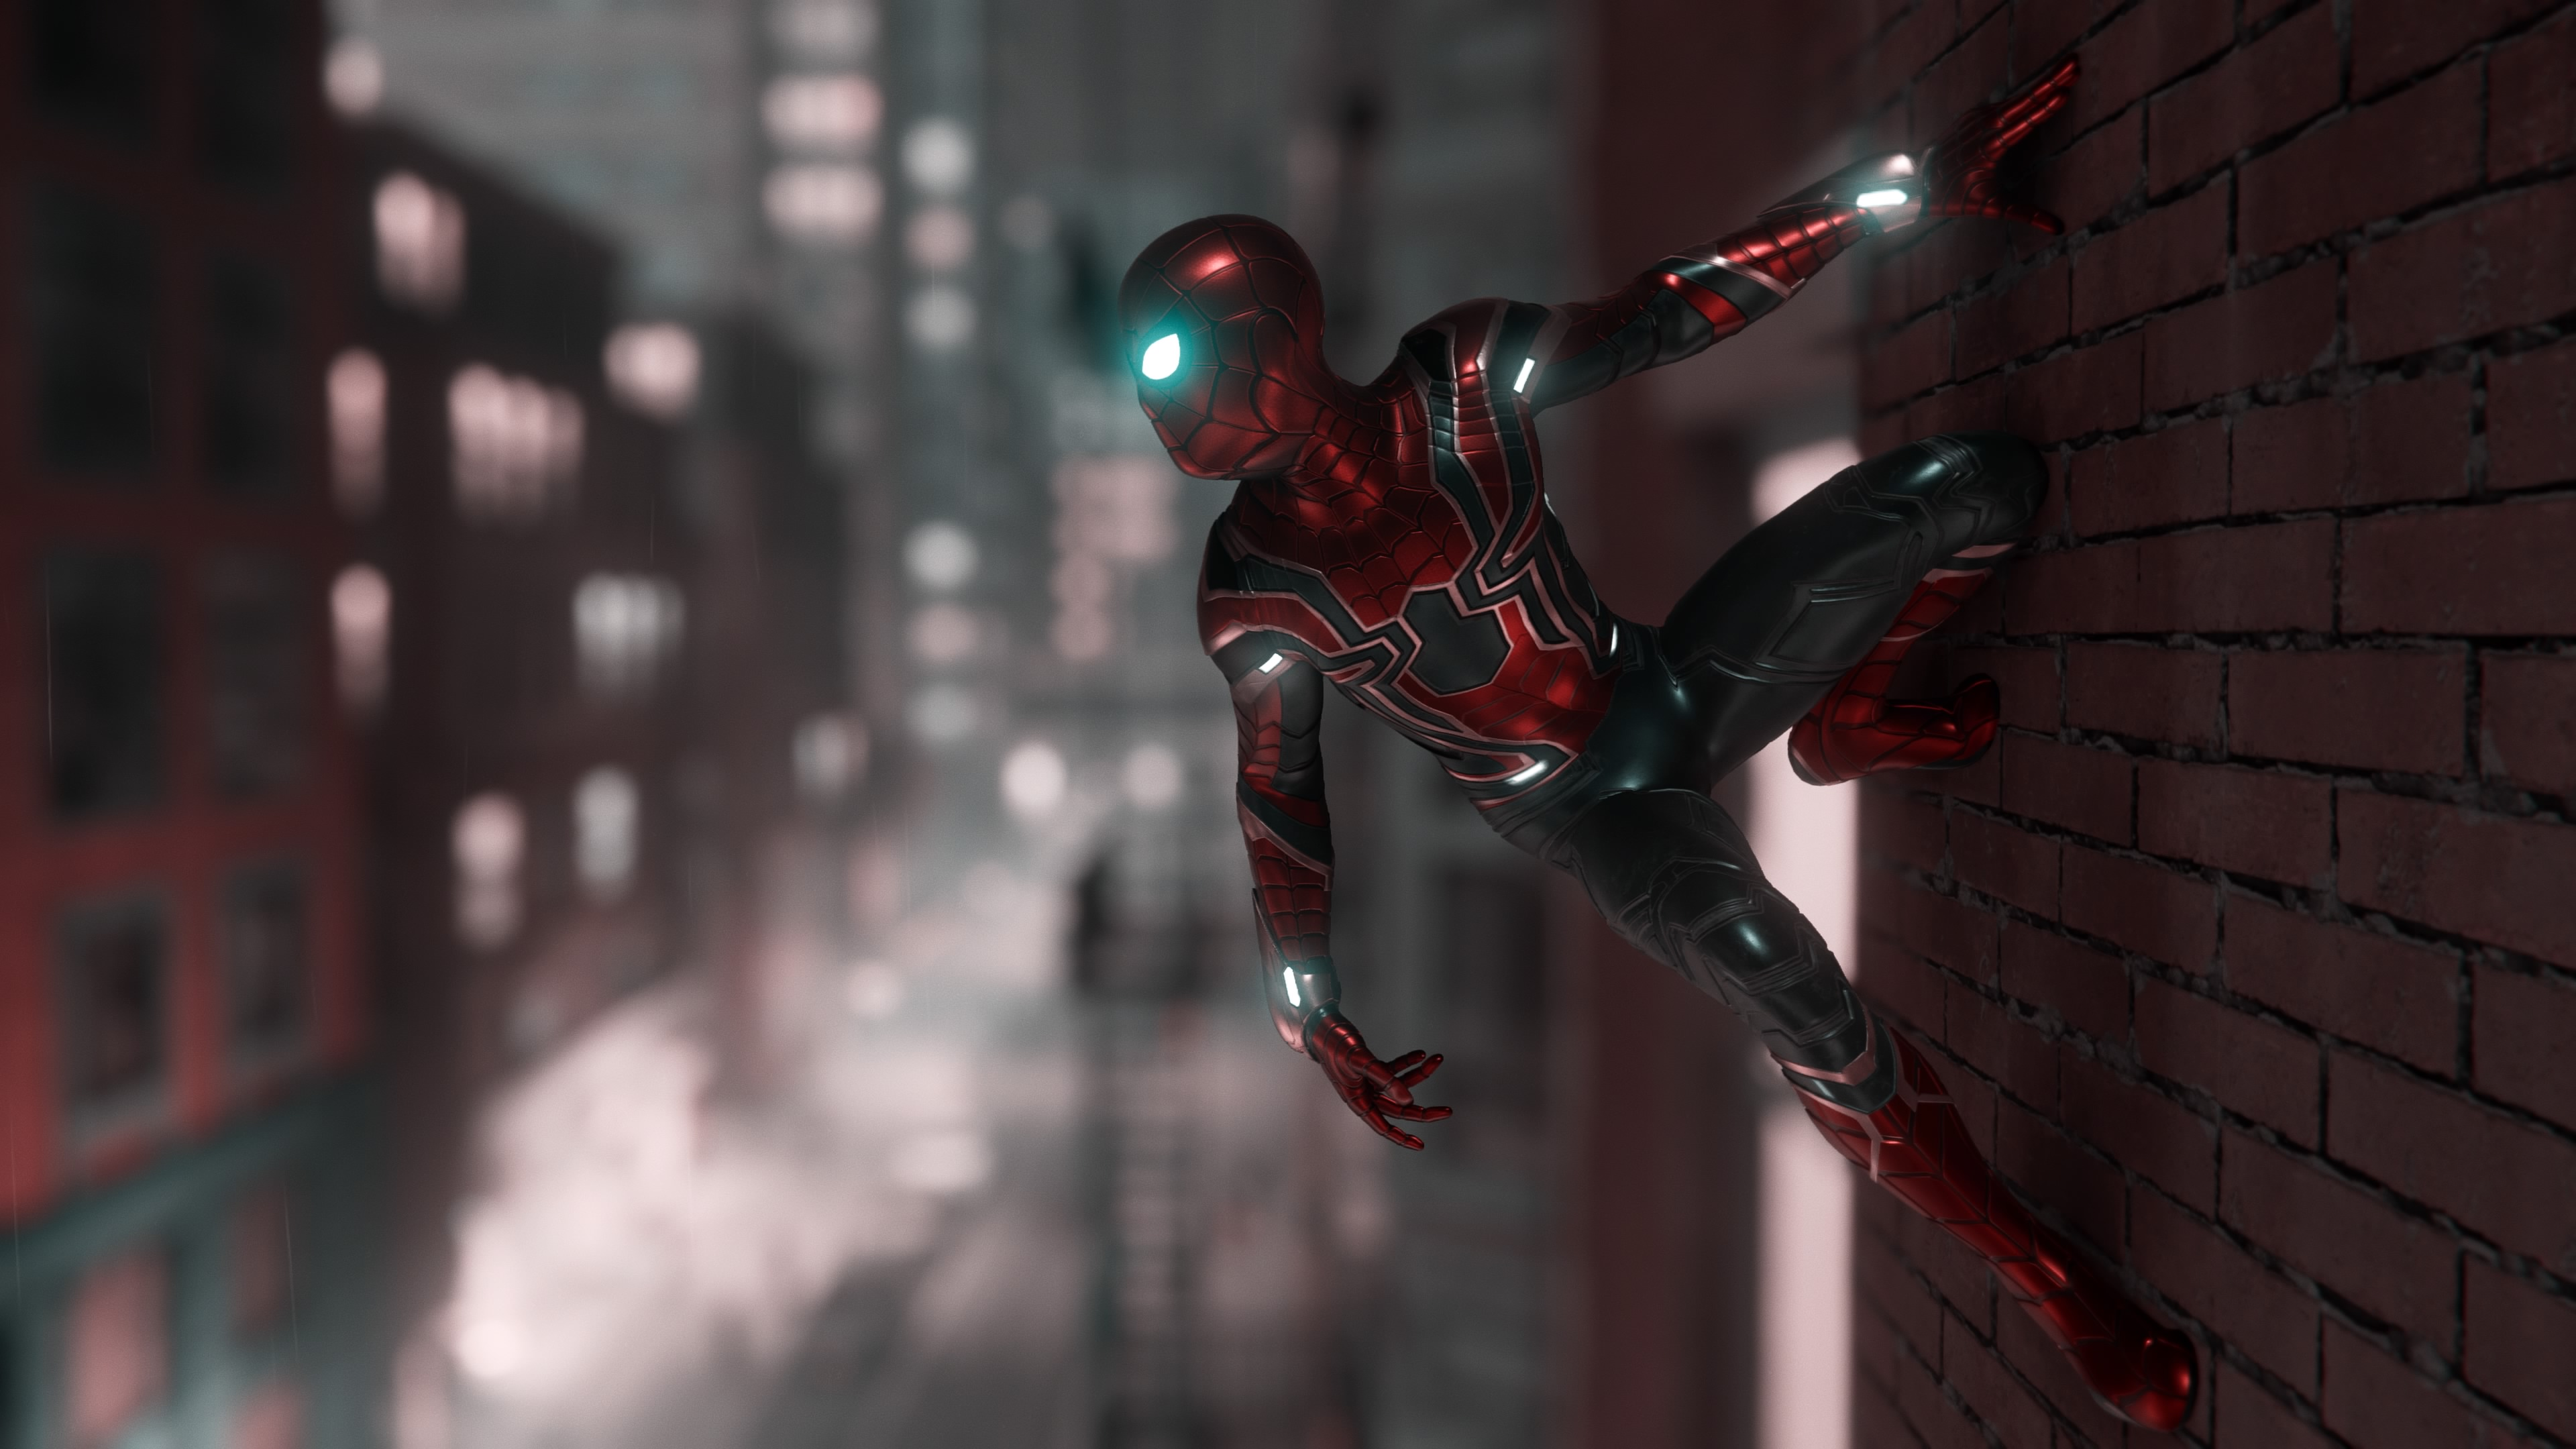 1360x768 marvel spiderman ps4 4k laptop hd hd 4k wallpapers images backgrounds photos and - Marvel hd wallpapers 4k ...